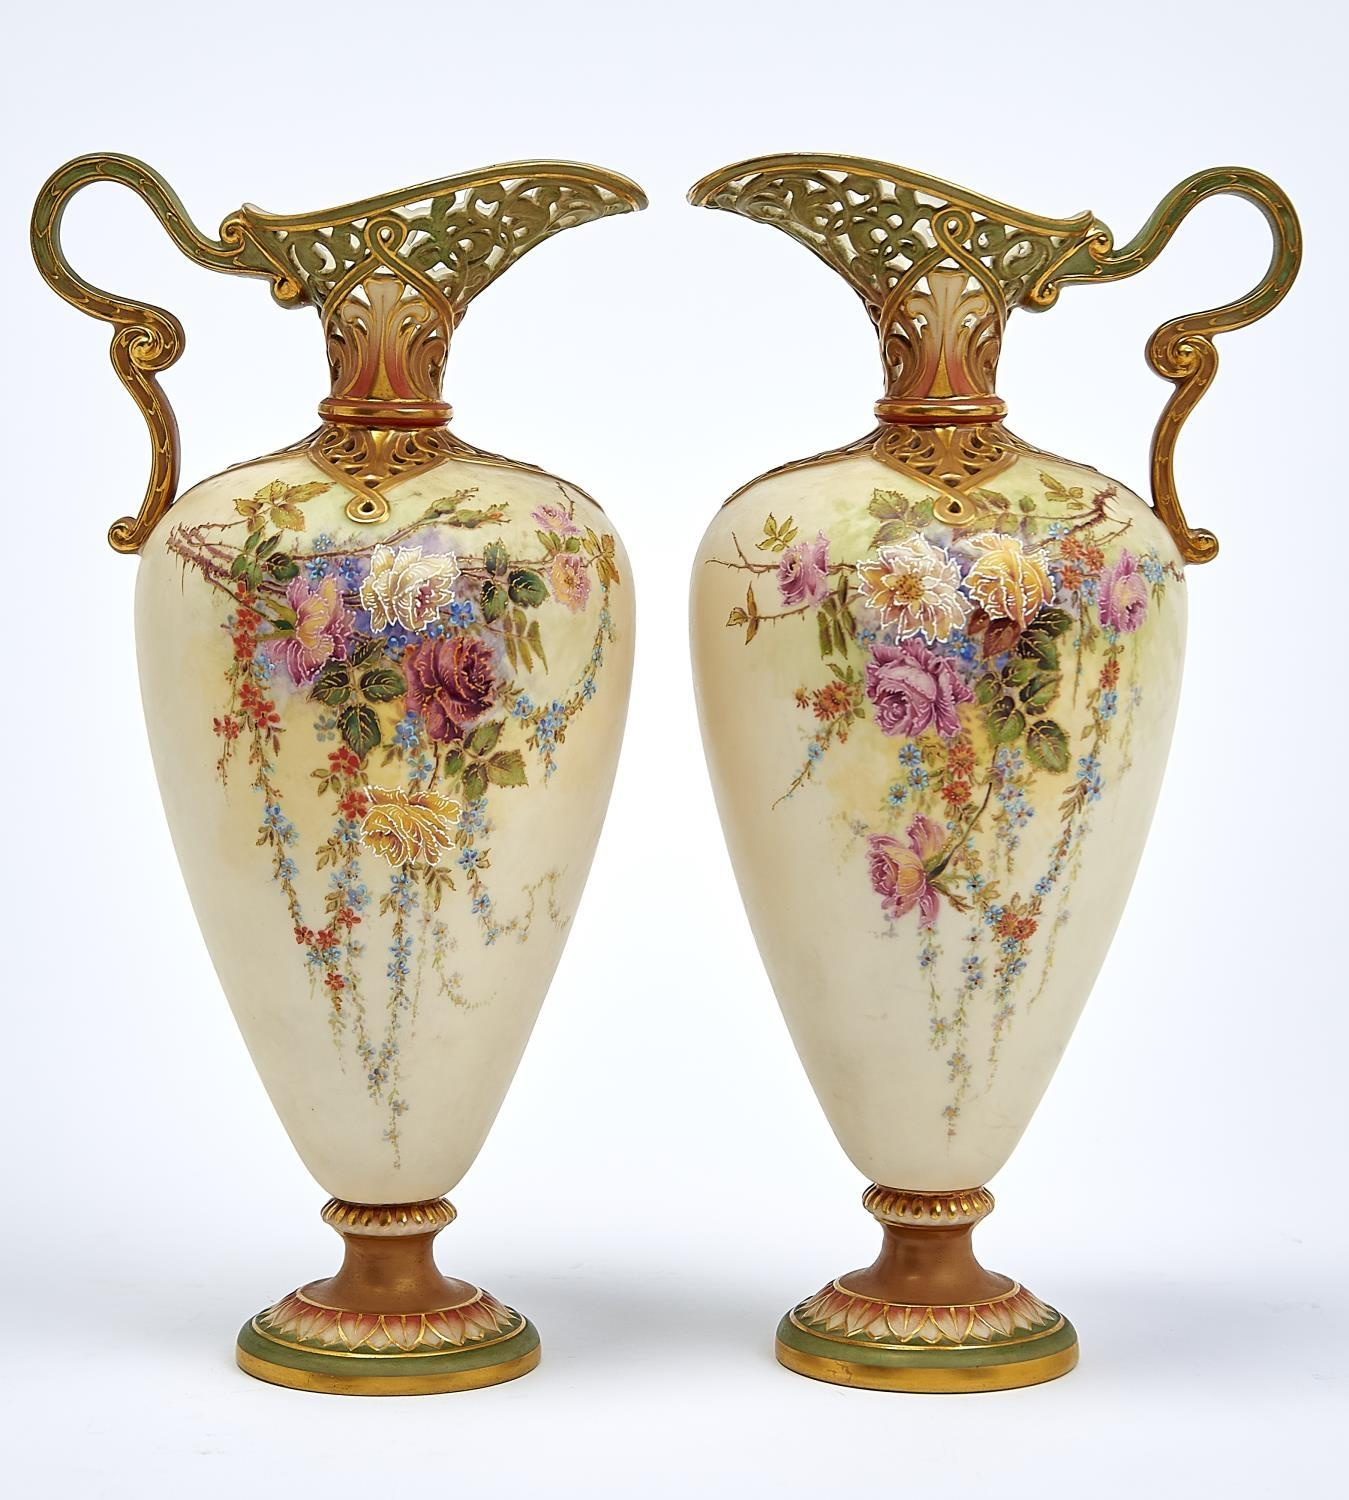 A PAIR OF GRAINGER WORCESTER EWERS WITH PIERCED SHOULDER AND NECK, 1890, DECORATED WITH ROSES, THE